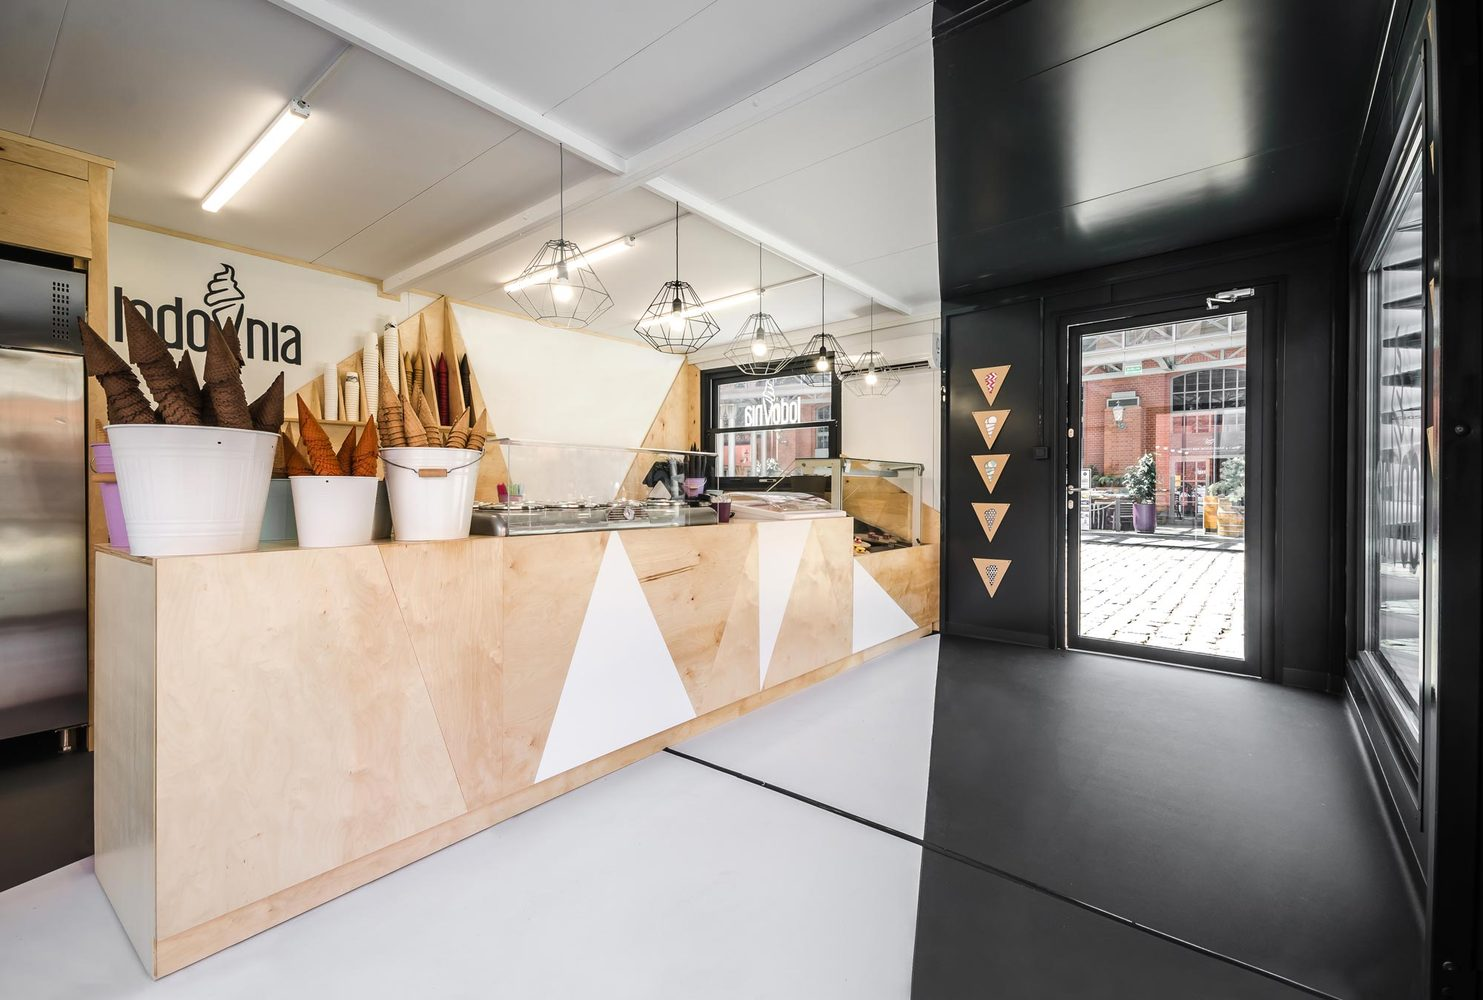 7_LODOVNIA Ice Cream Shop_mode lina architekci_Inspirationist